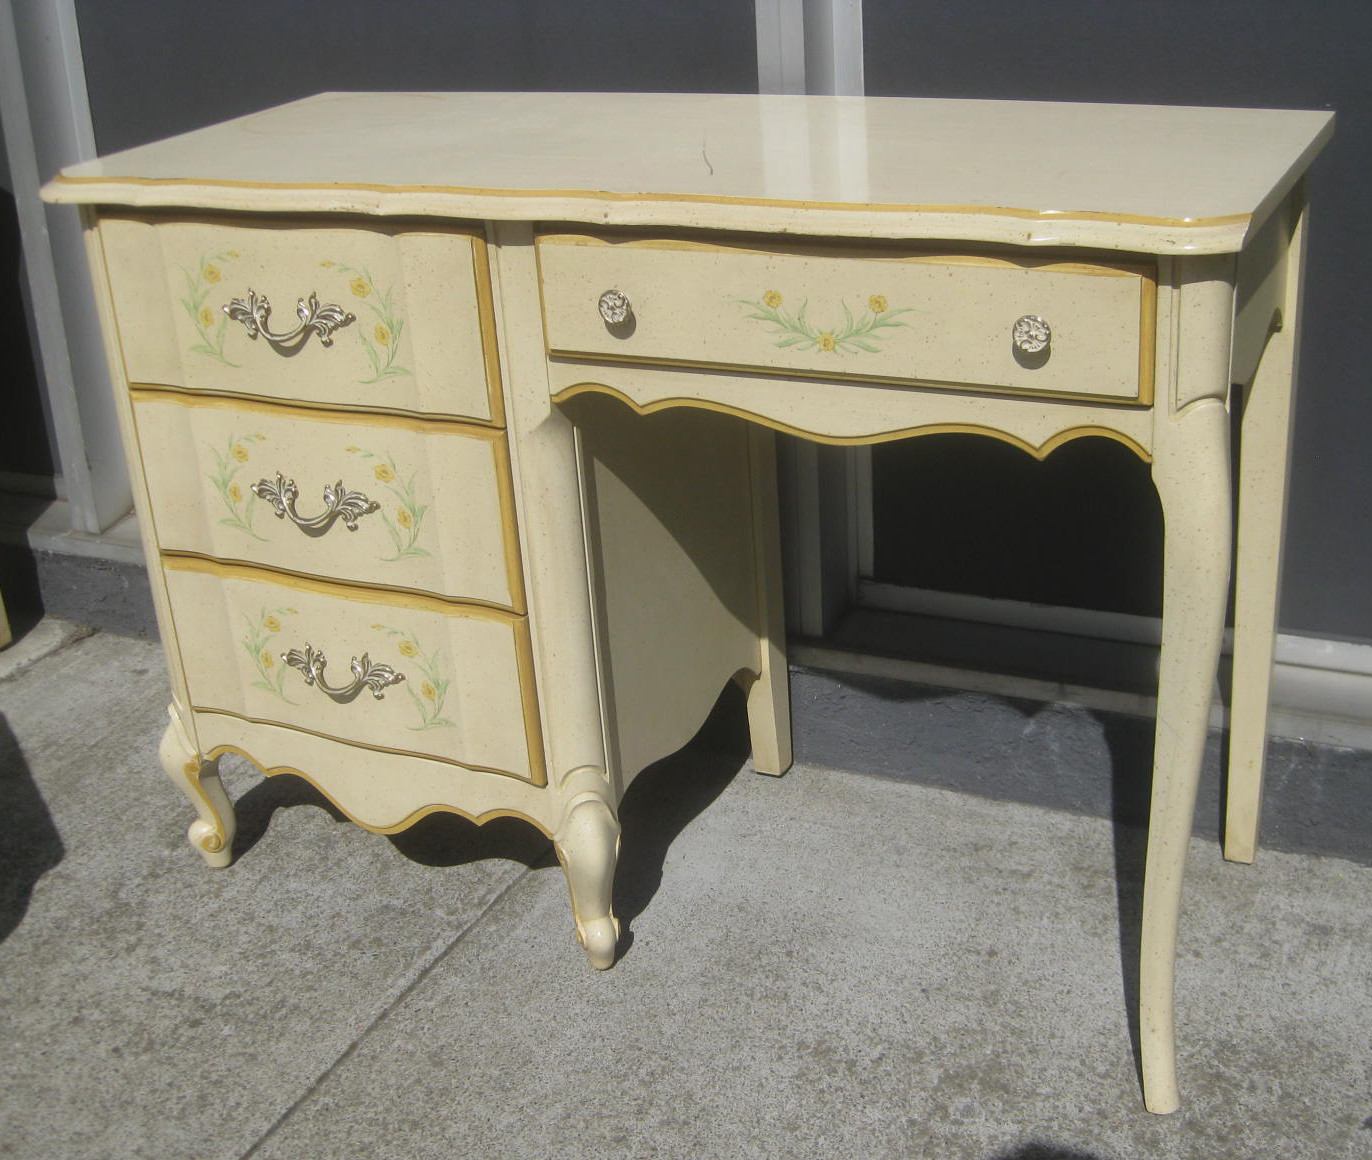 Best ideas about French Provincial Bedroom Set . Save or Pin UHURU FURNITURE & COLLECTIBLES SOLD French Provincial Now.